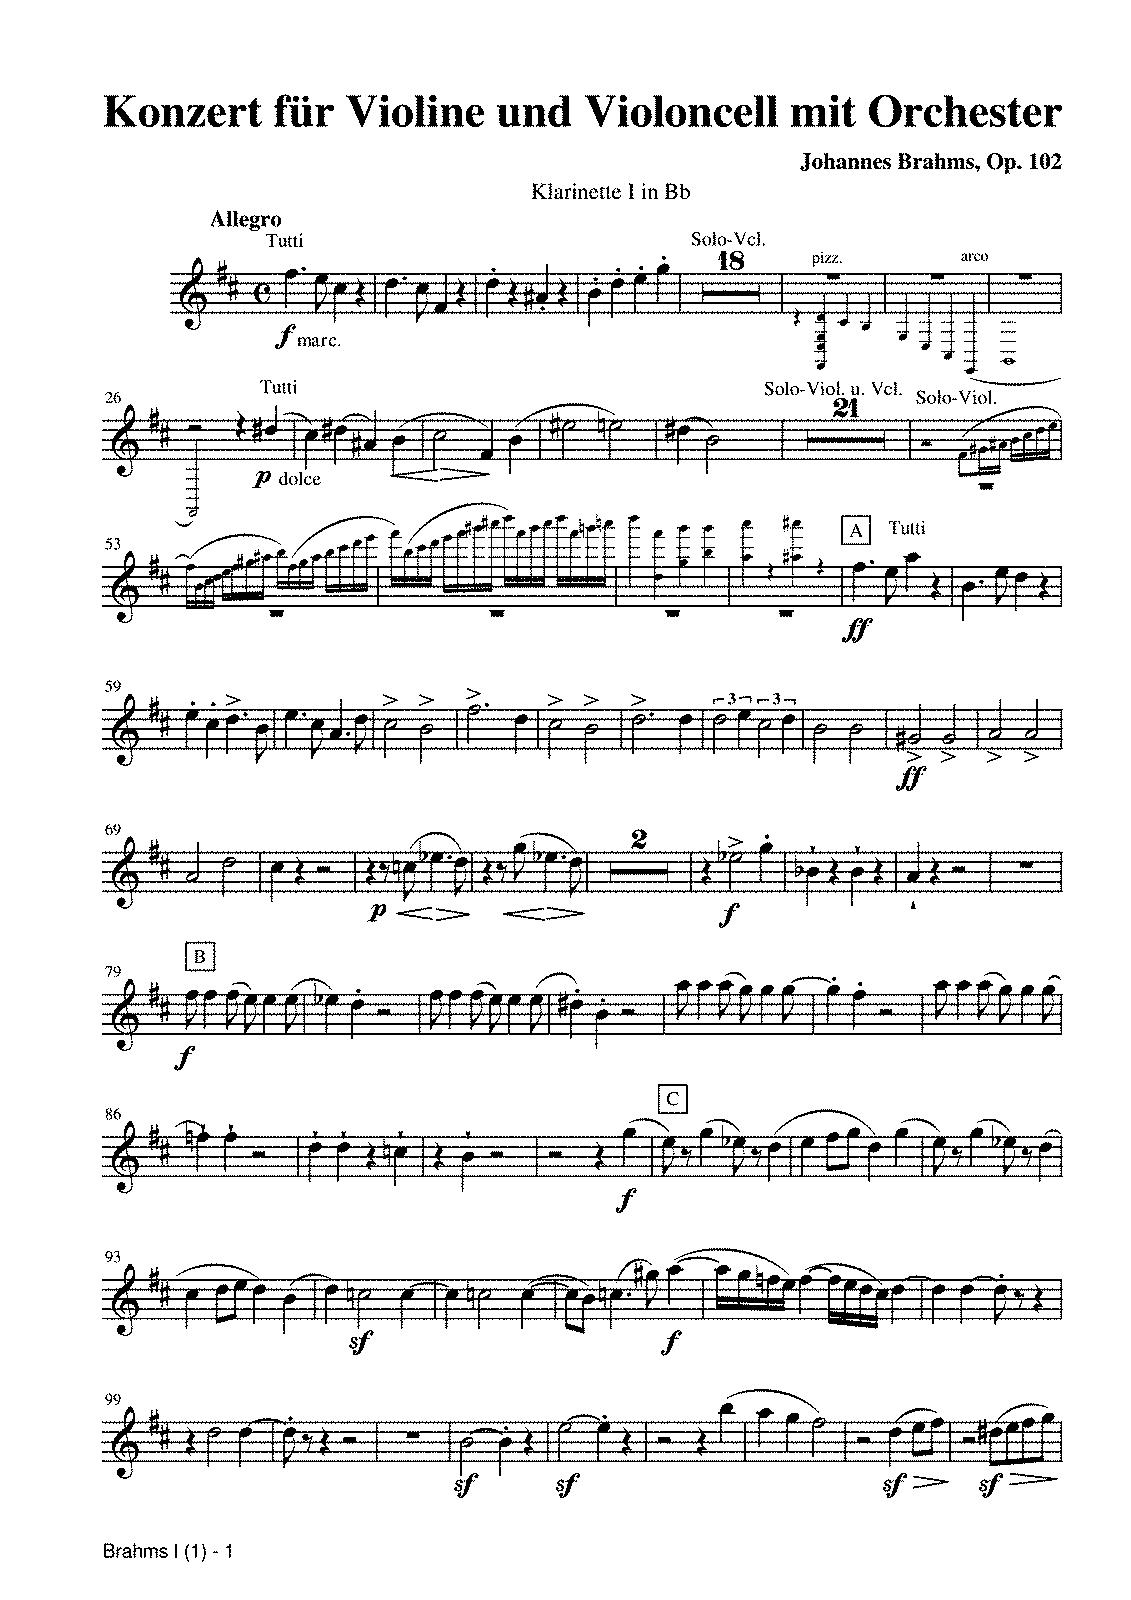 PMLP06525-Brahms - Concerto for Violin and Cello in A minor, Op.102 - Clarinet I.pdf